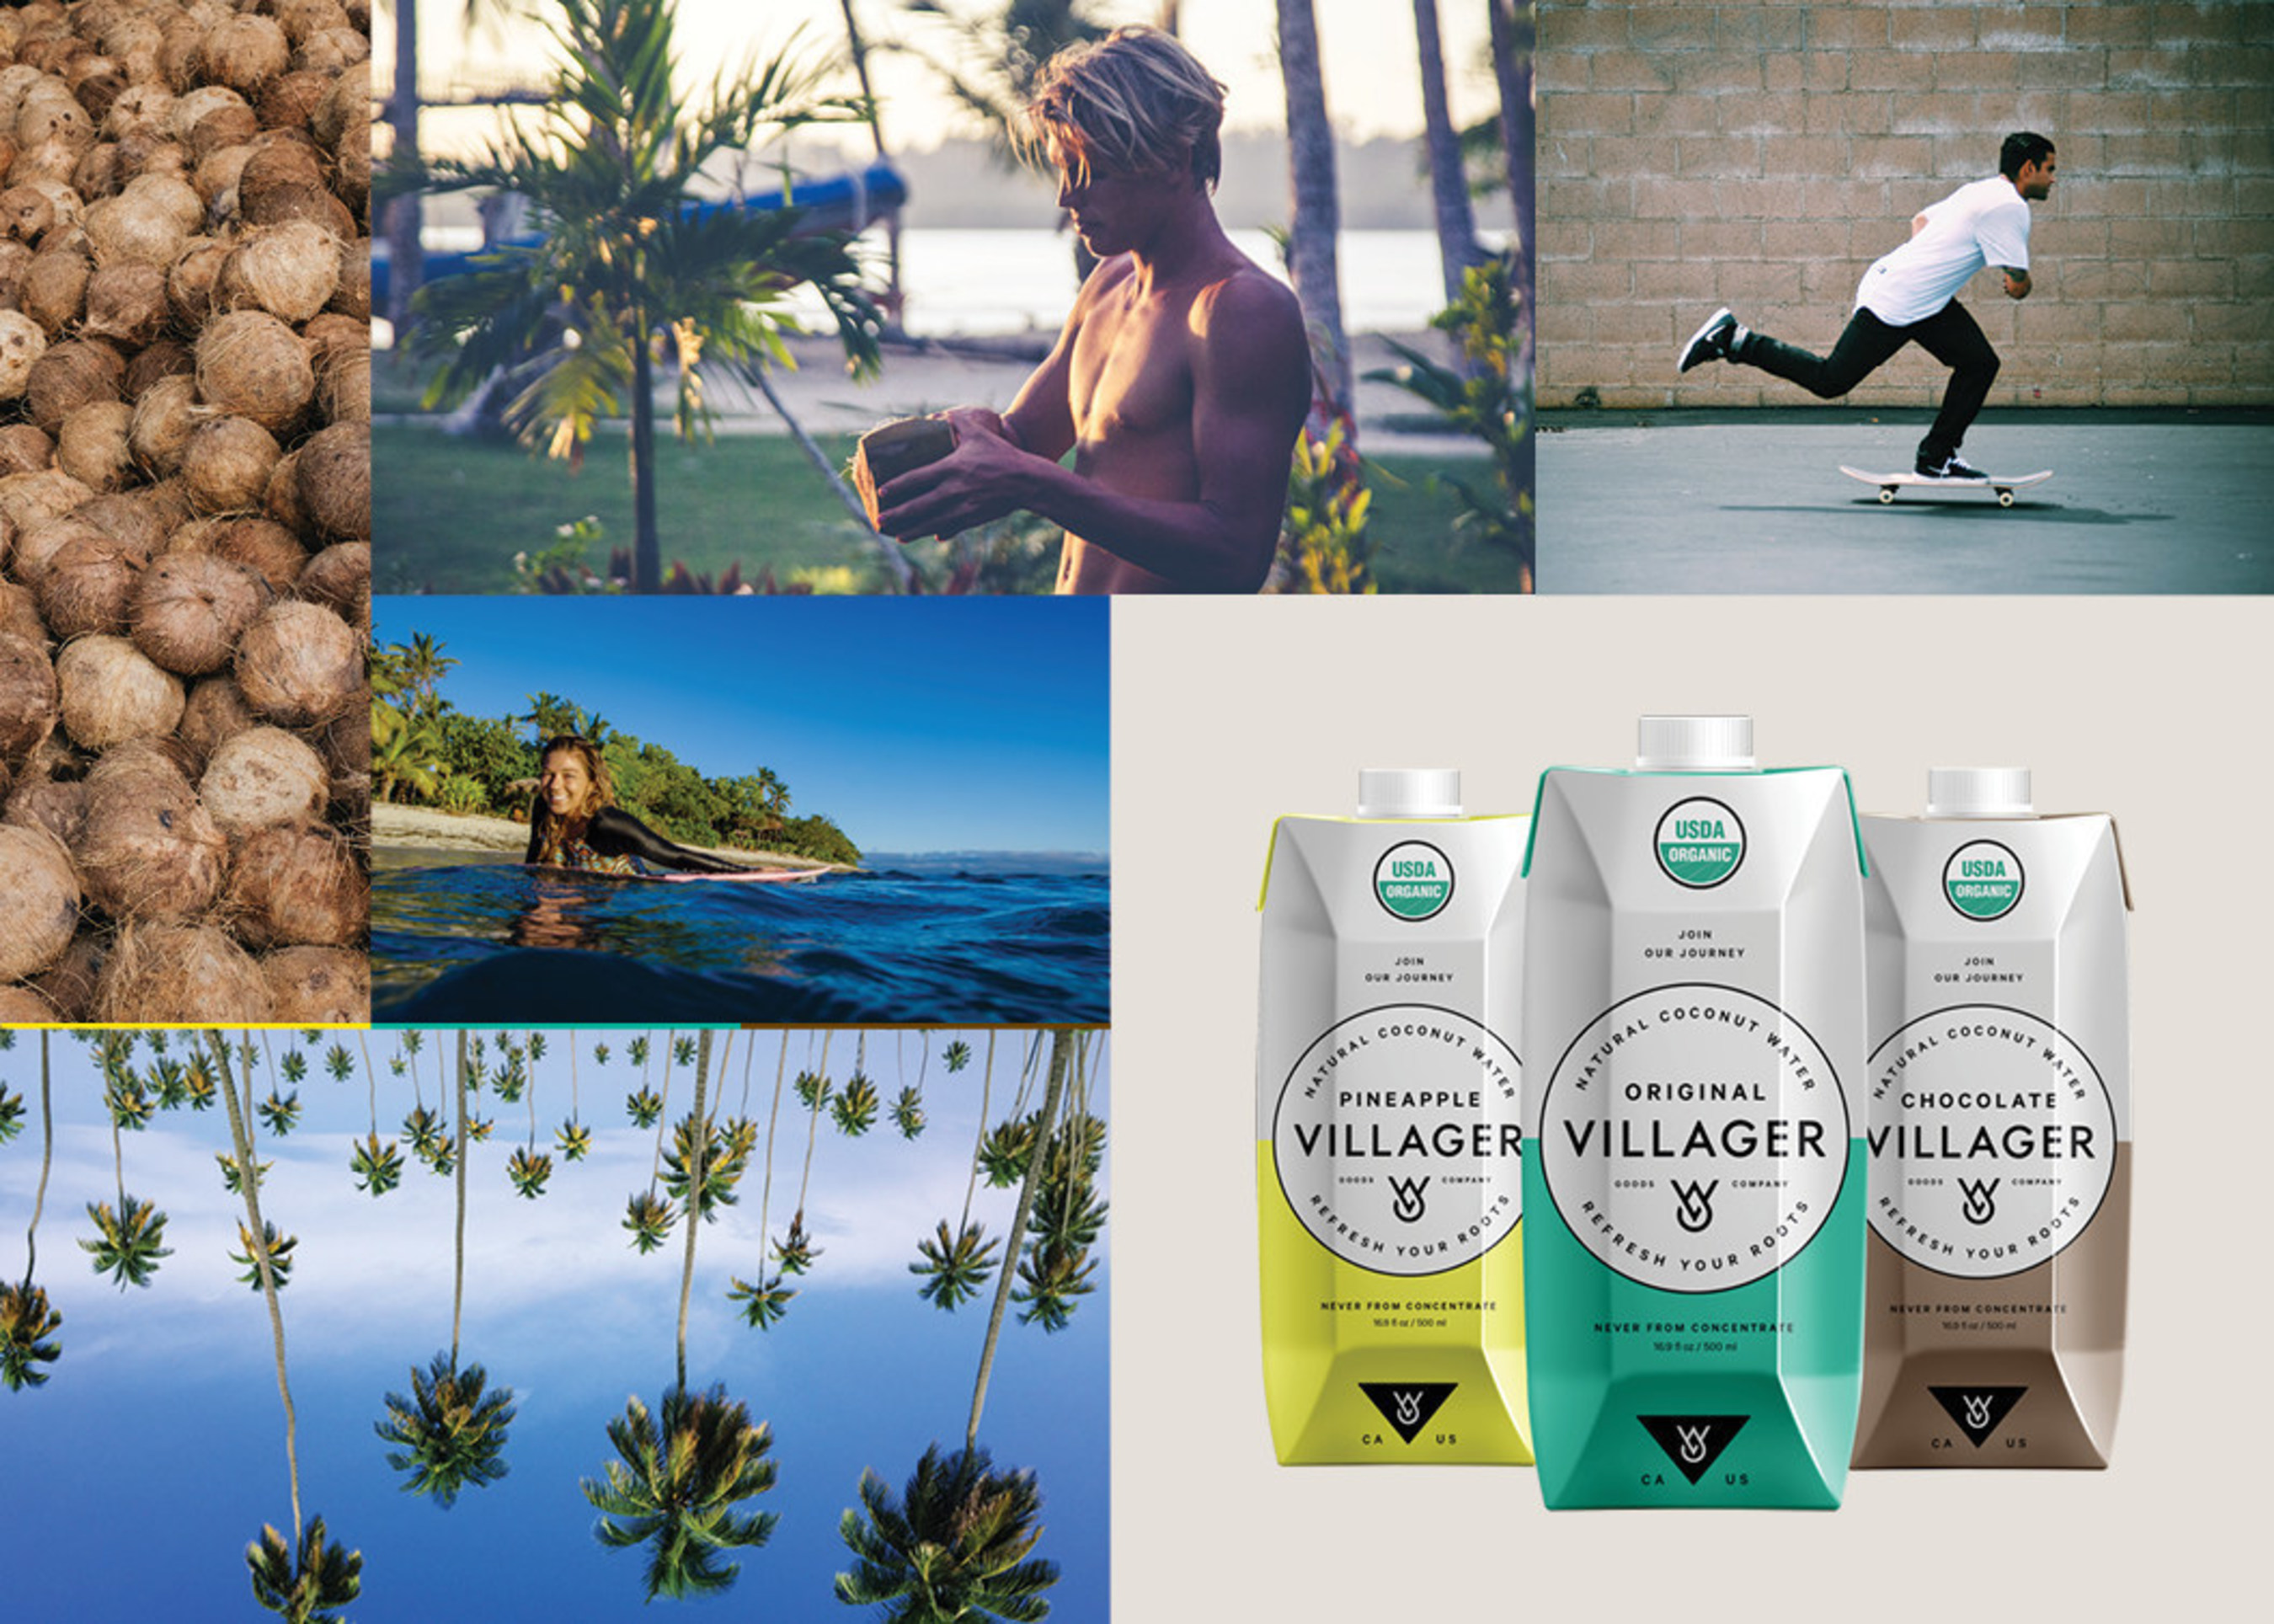 Villager Goods To Launch Coconut Water This Fall 2016 With 26 Of The World's Top Surfers, Skateboarders And Snowboarders